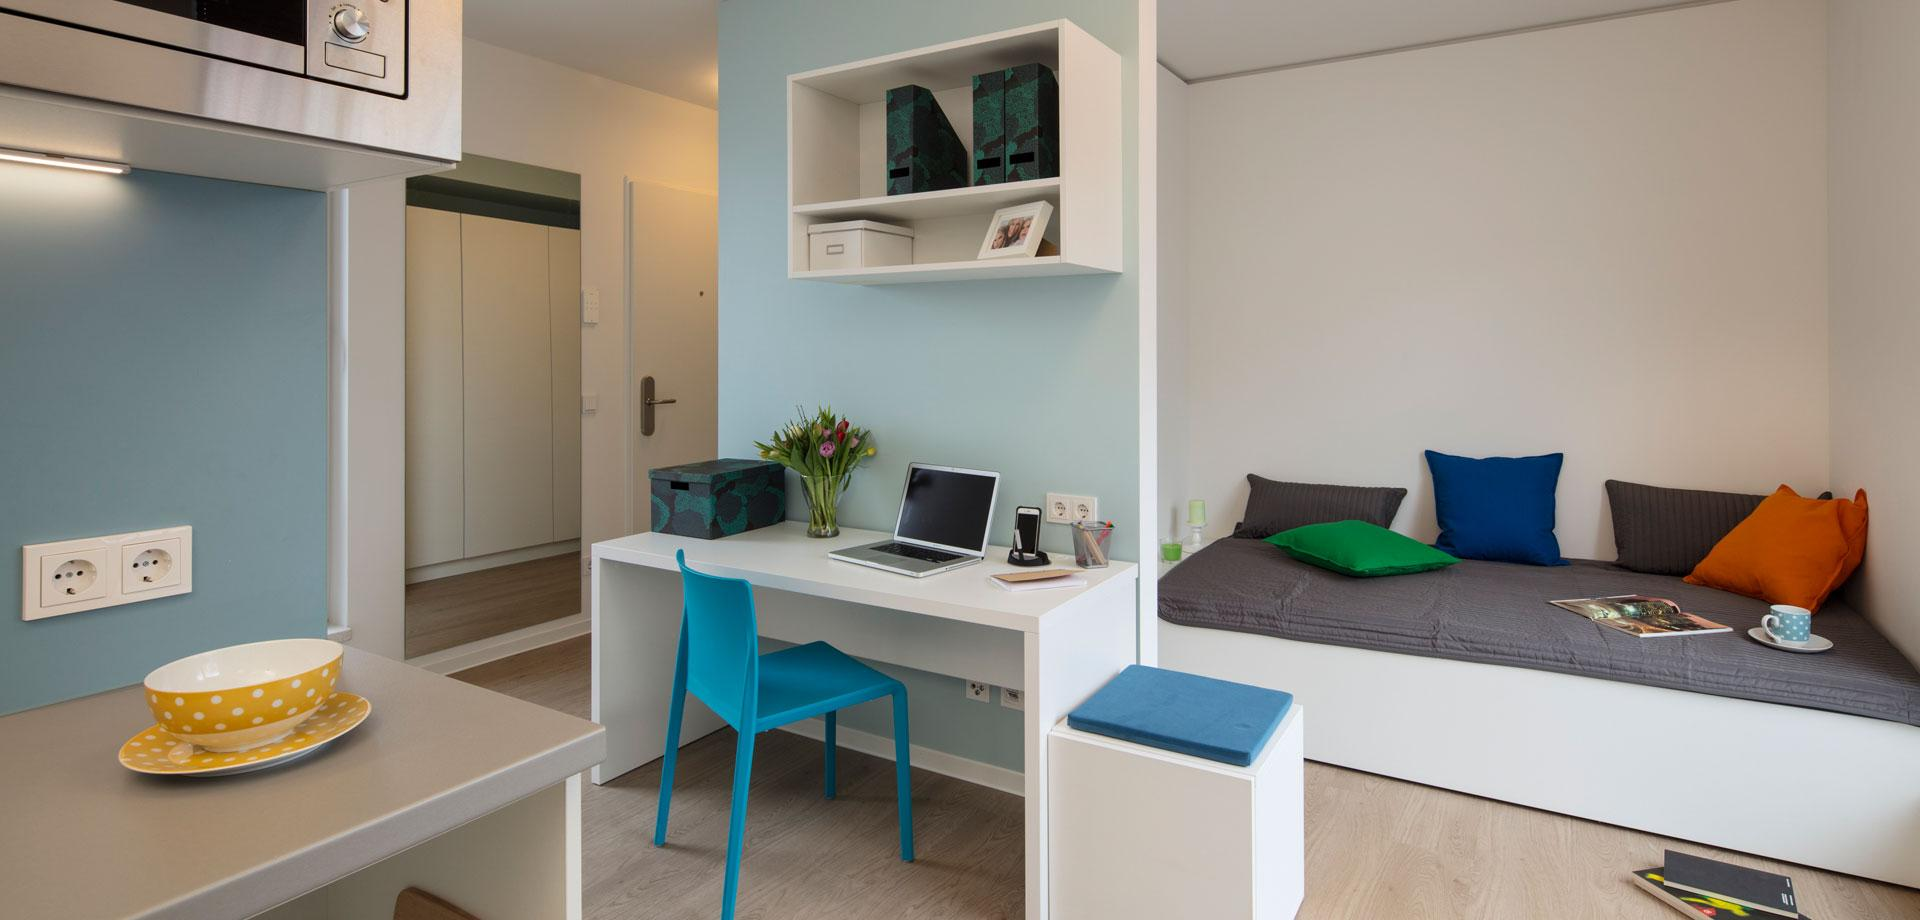 Studentenapartments zur All-inclusive-Miete - Quartillion Köln